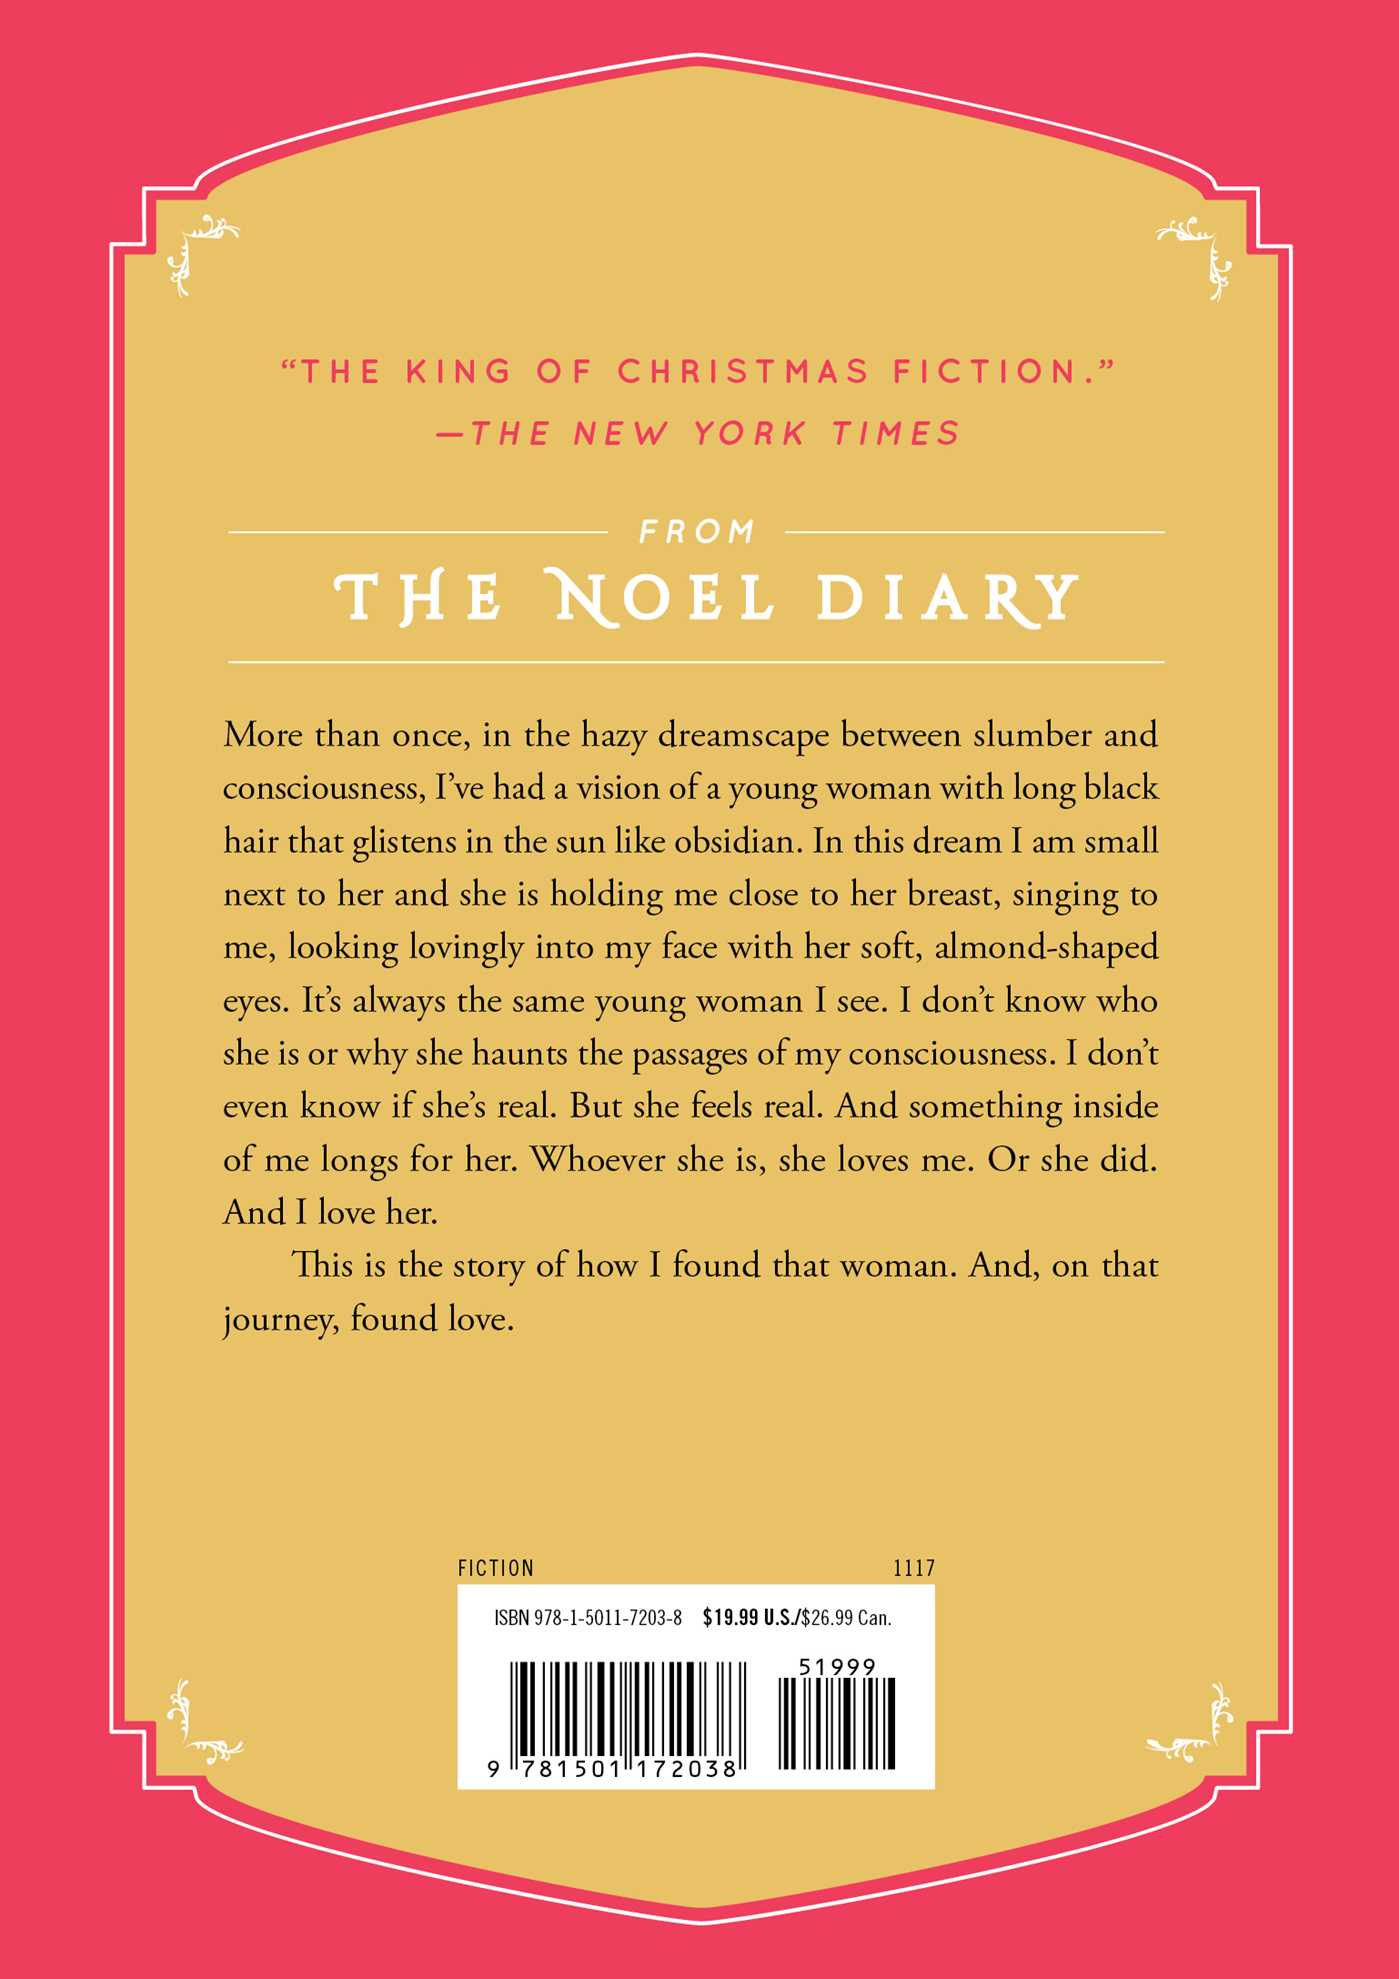 The noel diary 9781501172038 hr back